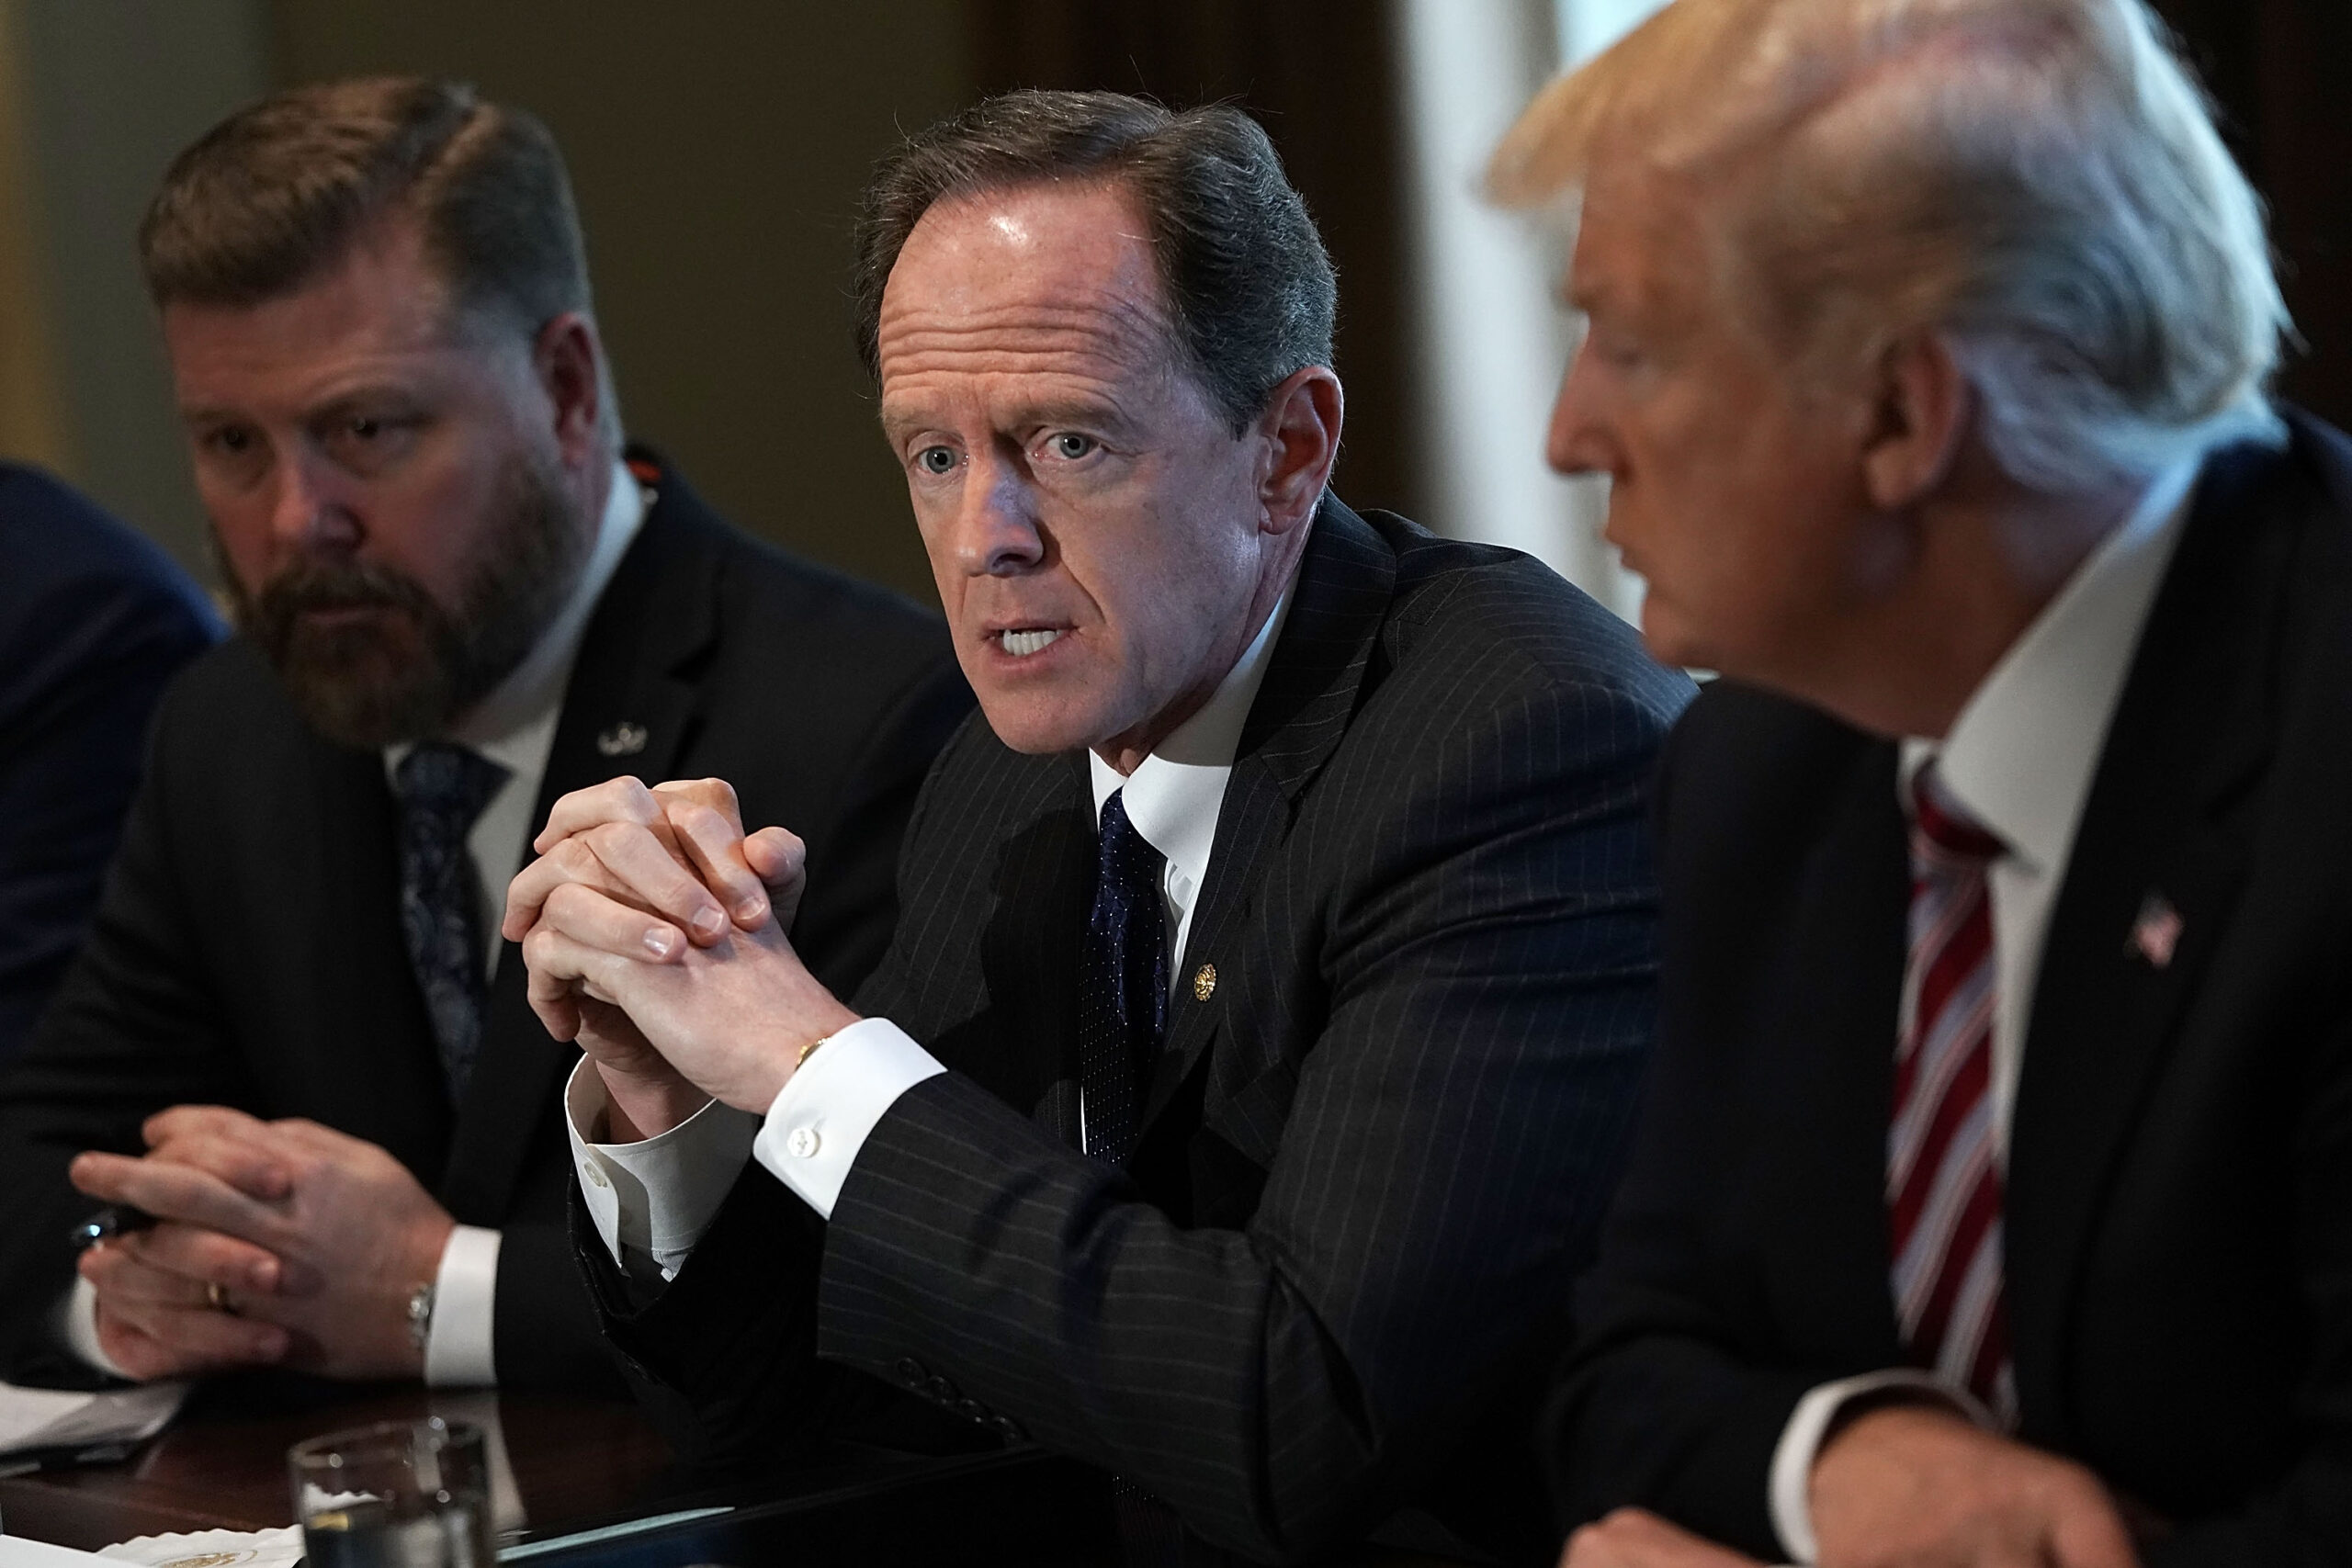 Pennsylvania Sen. Pat Toomey Announces Plan to Retire in 2022 For 'Personal' Reasons